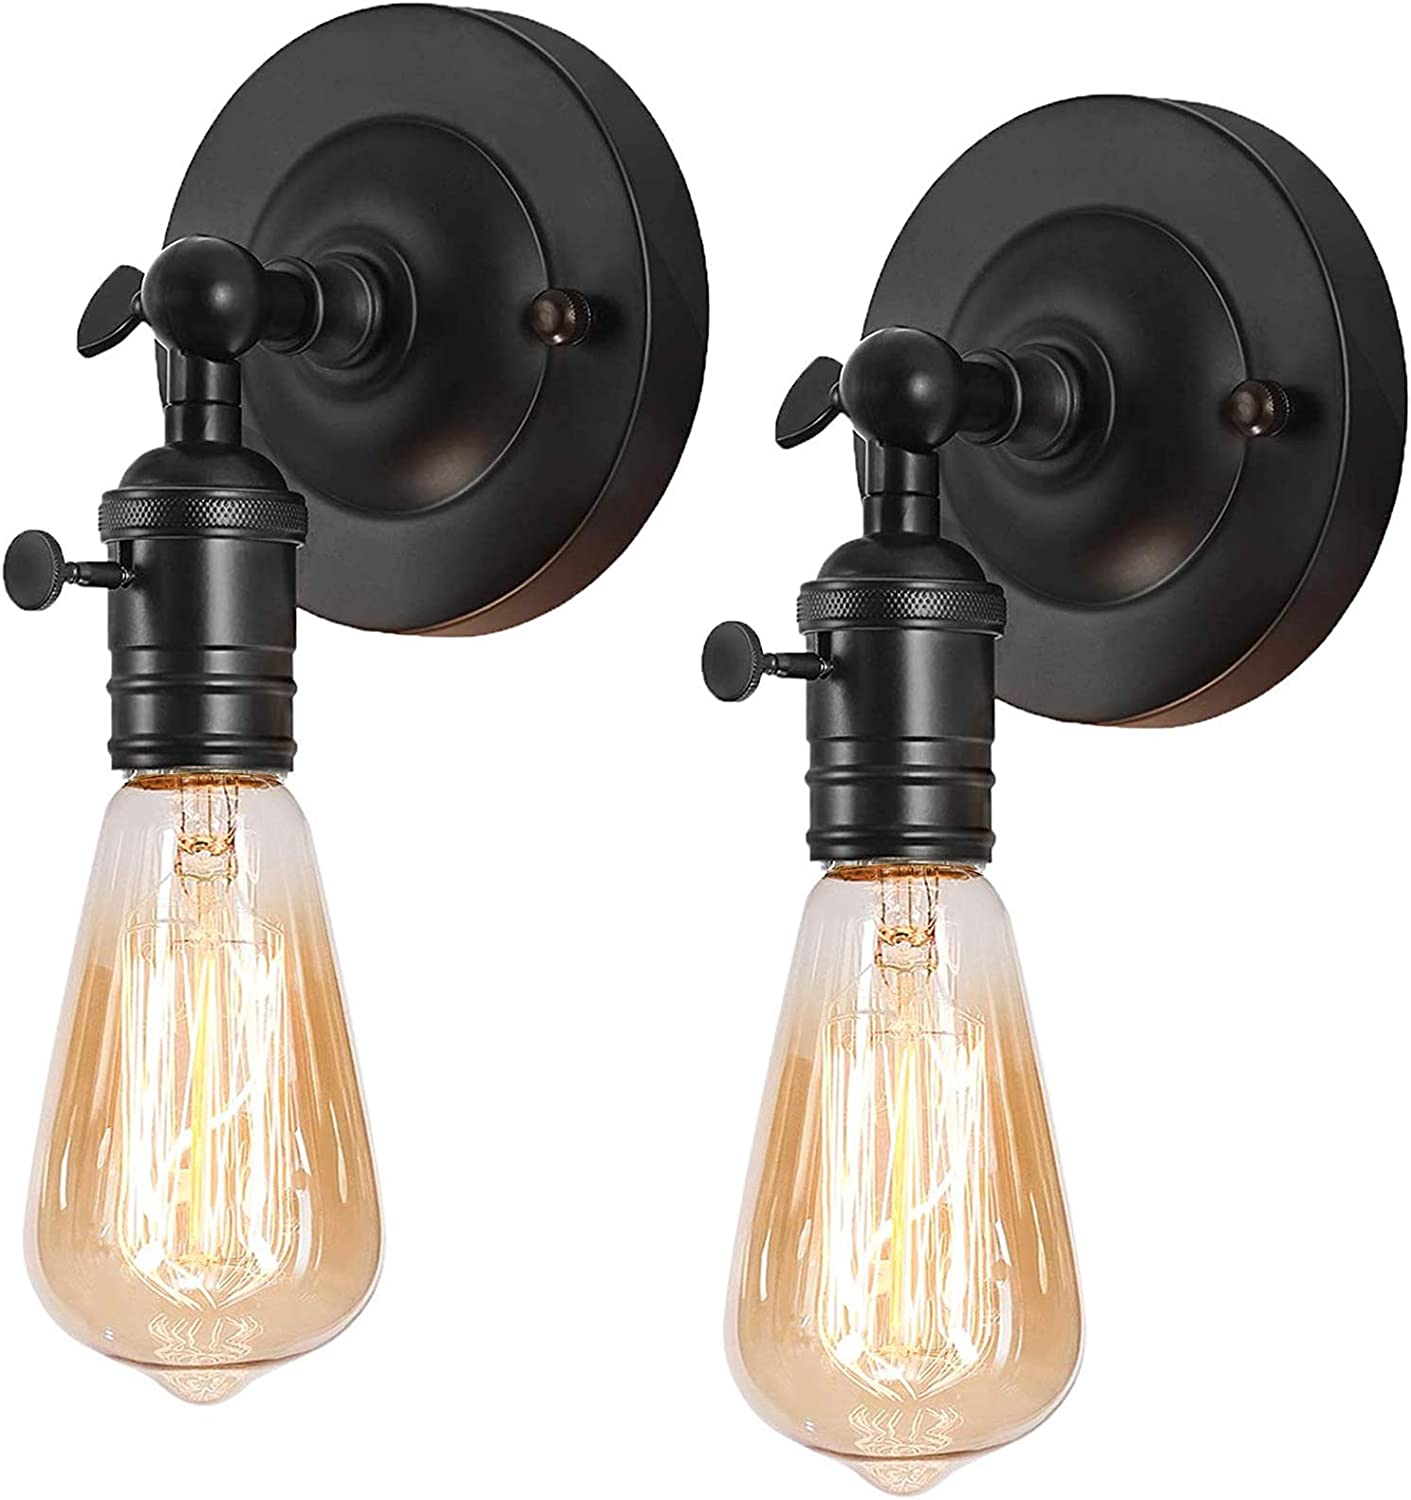 Industrial Max 80% OFF Wall Sconce 2 Pack Wa Swing Farmhouse Popular Adjustable Arm